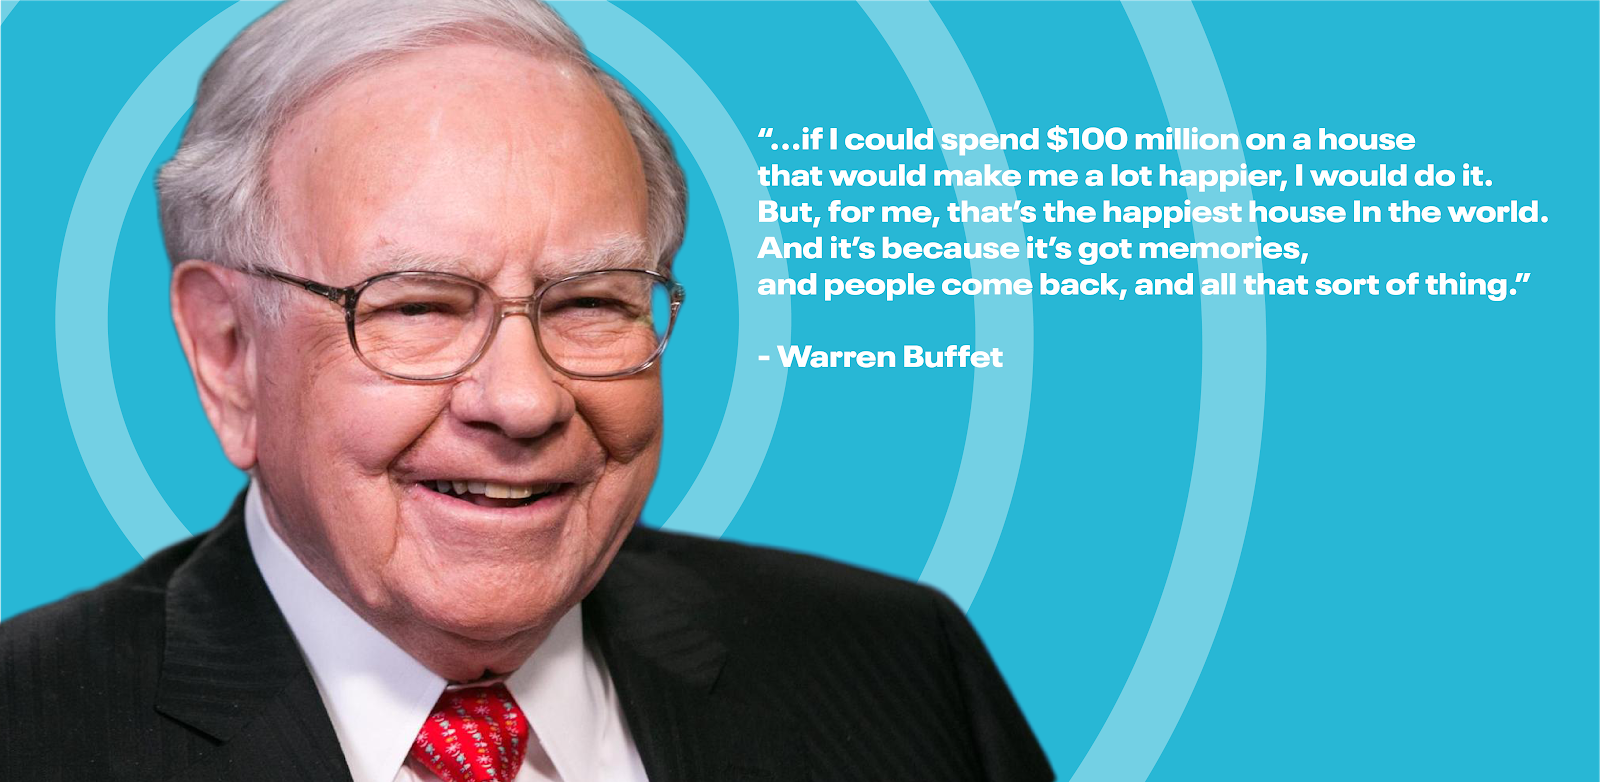 """""""If I could spend $100 million on a house that would make me a lot happier, I would do it. But, for me, that's the happiest house in the world. And it's because it's got memories, and people come back, and all that sort of thing.""""—Warren Buffet"""